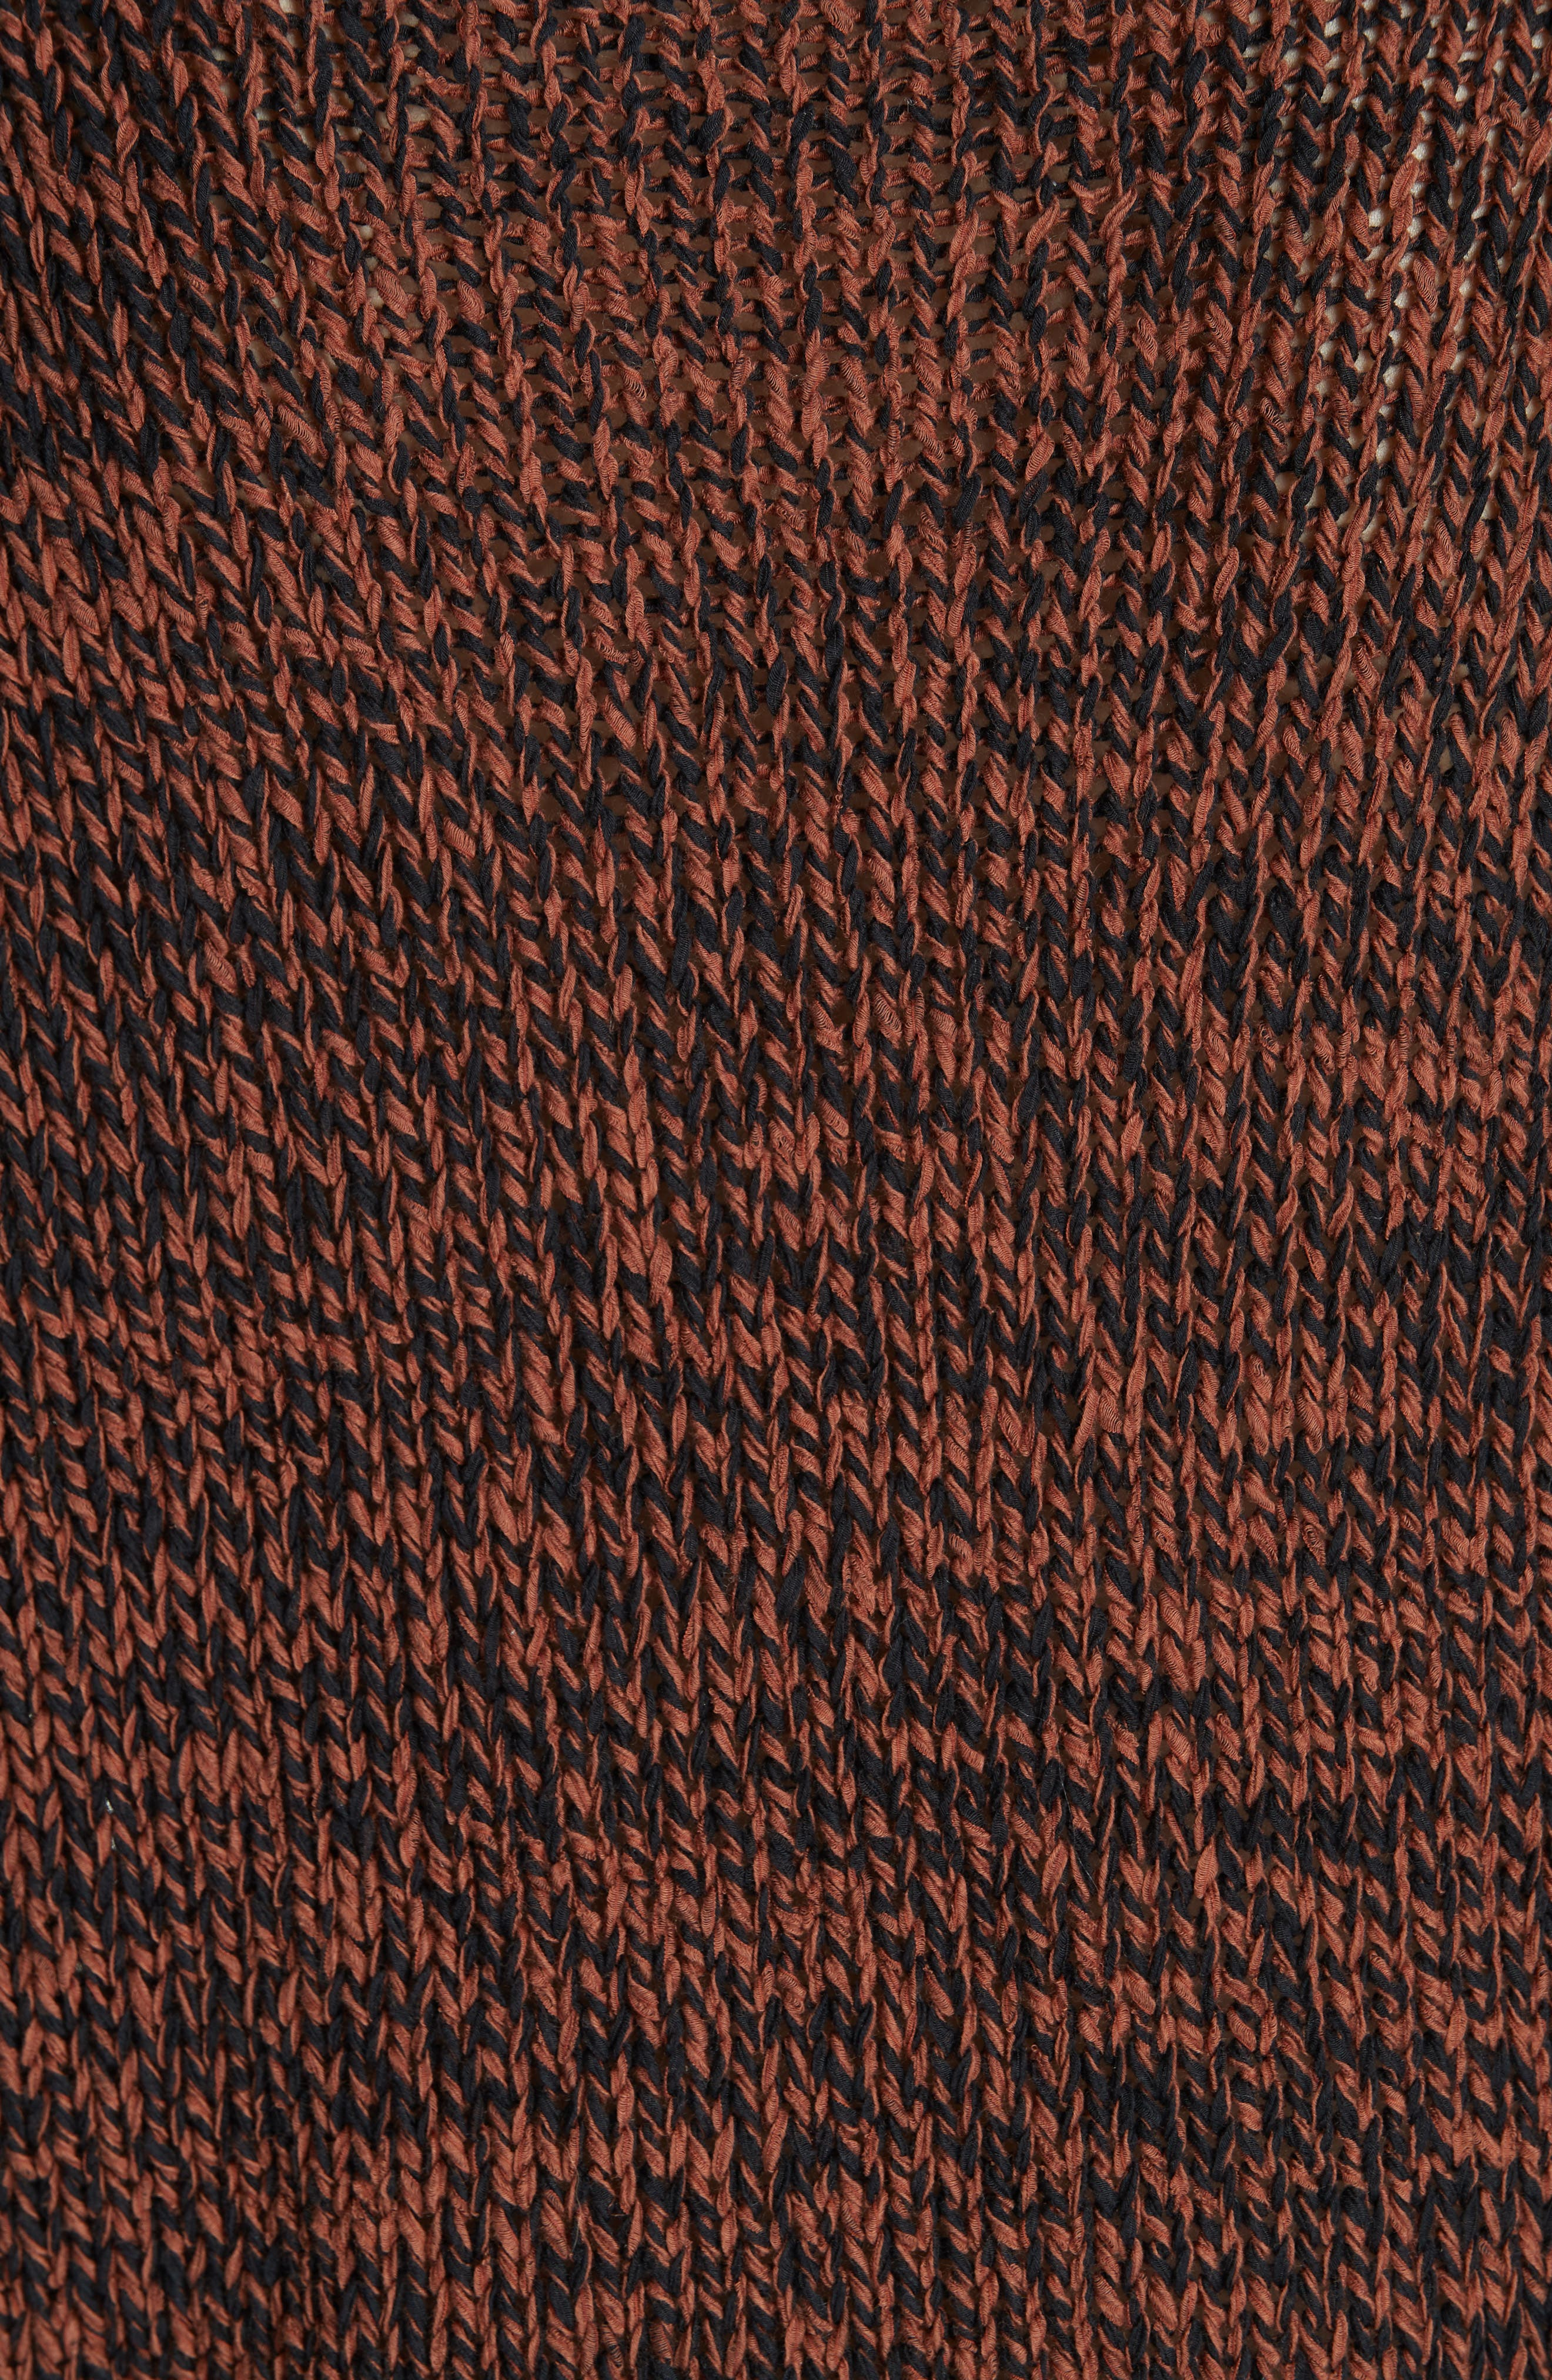 Marled Organic Cotton Blend Sweater,                             Alternate thumbnail 5, color,                             NUTMEG